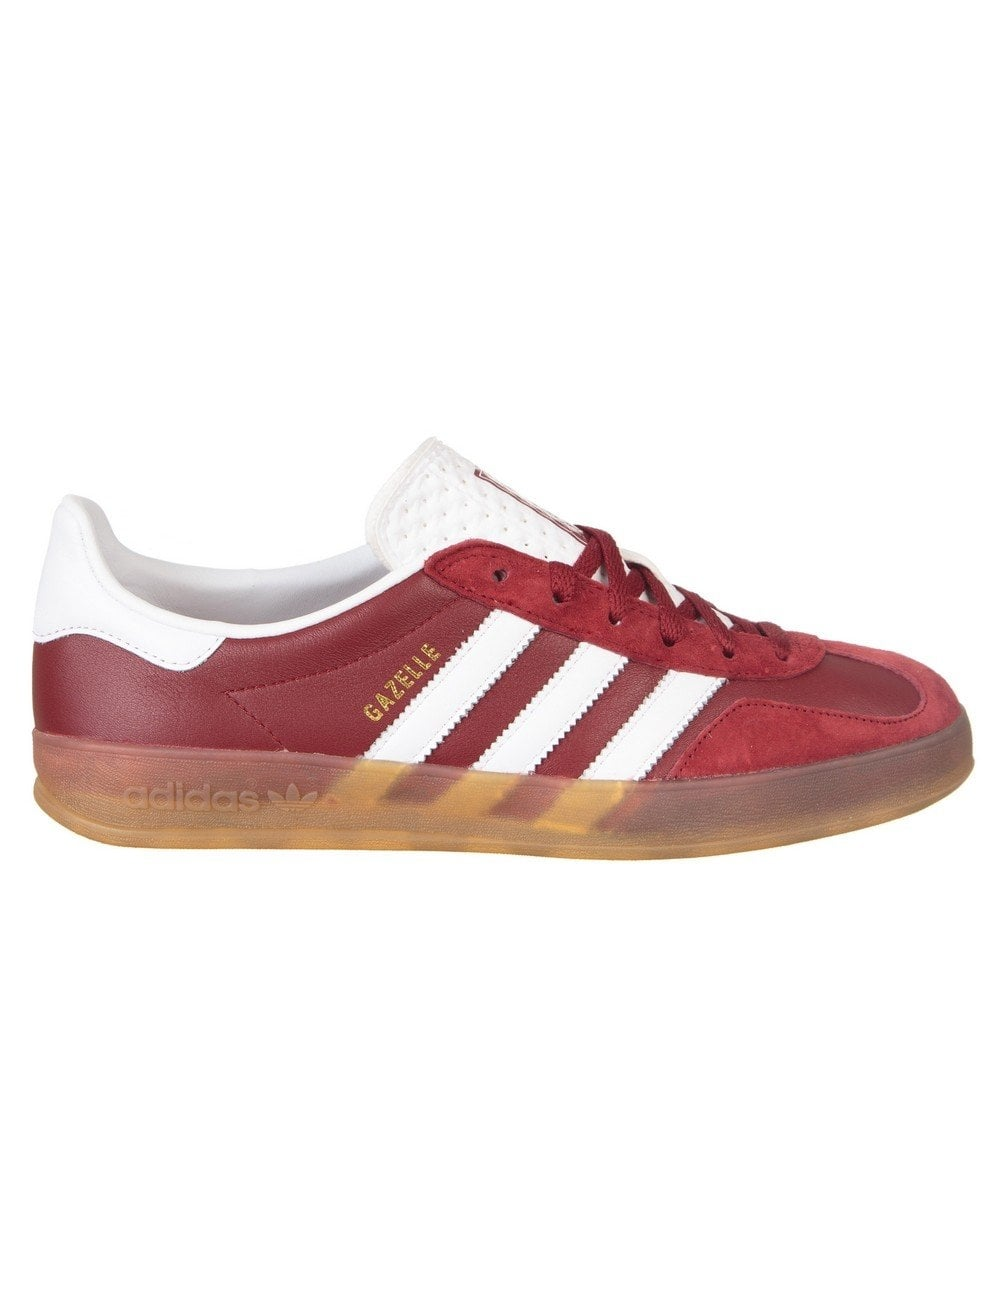 elegant shoes special section sale Gazelle Indoor Shoes - Rust Red